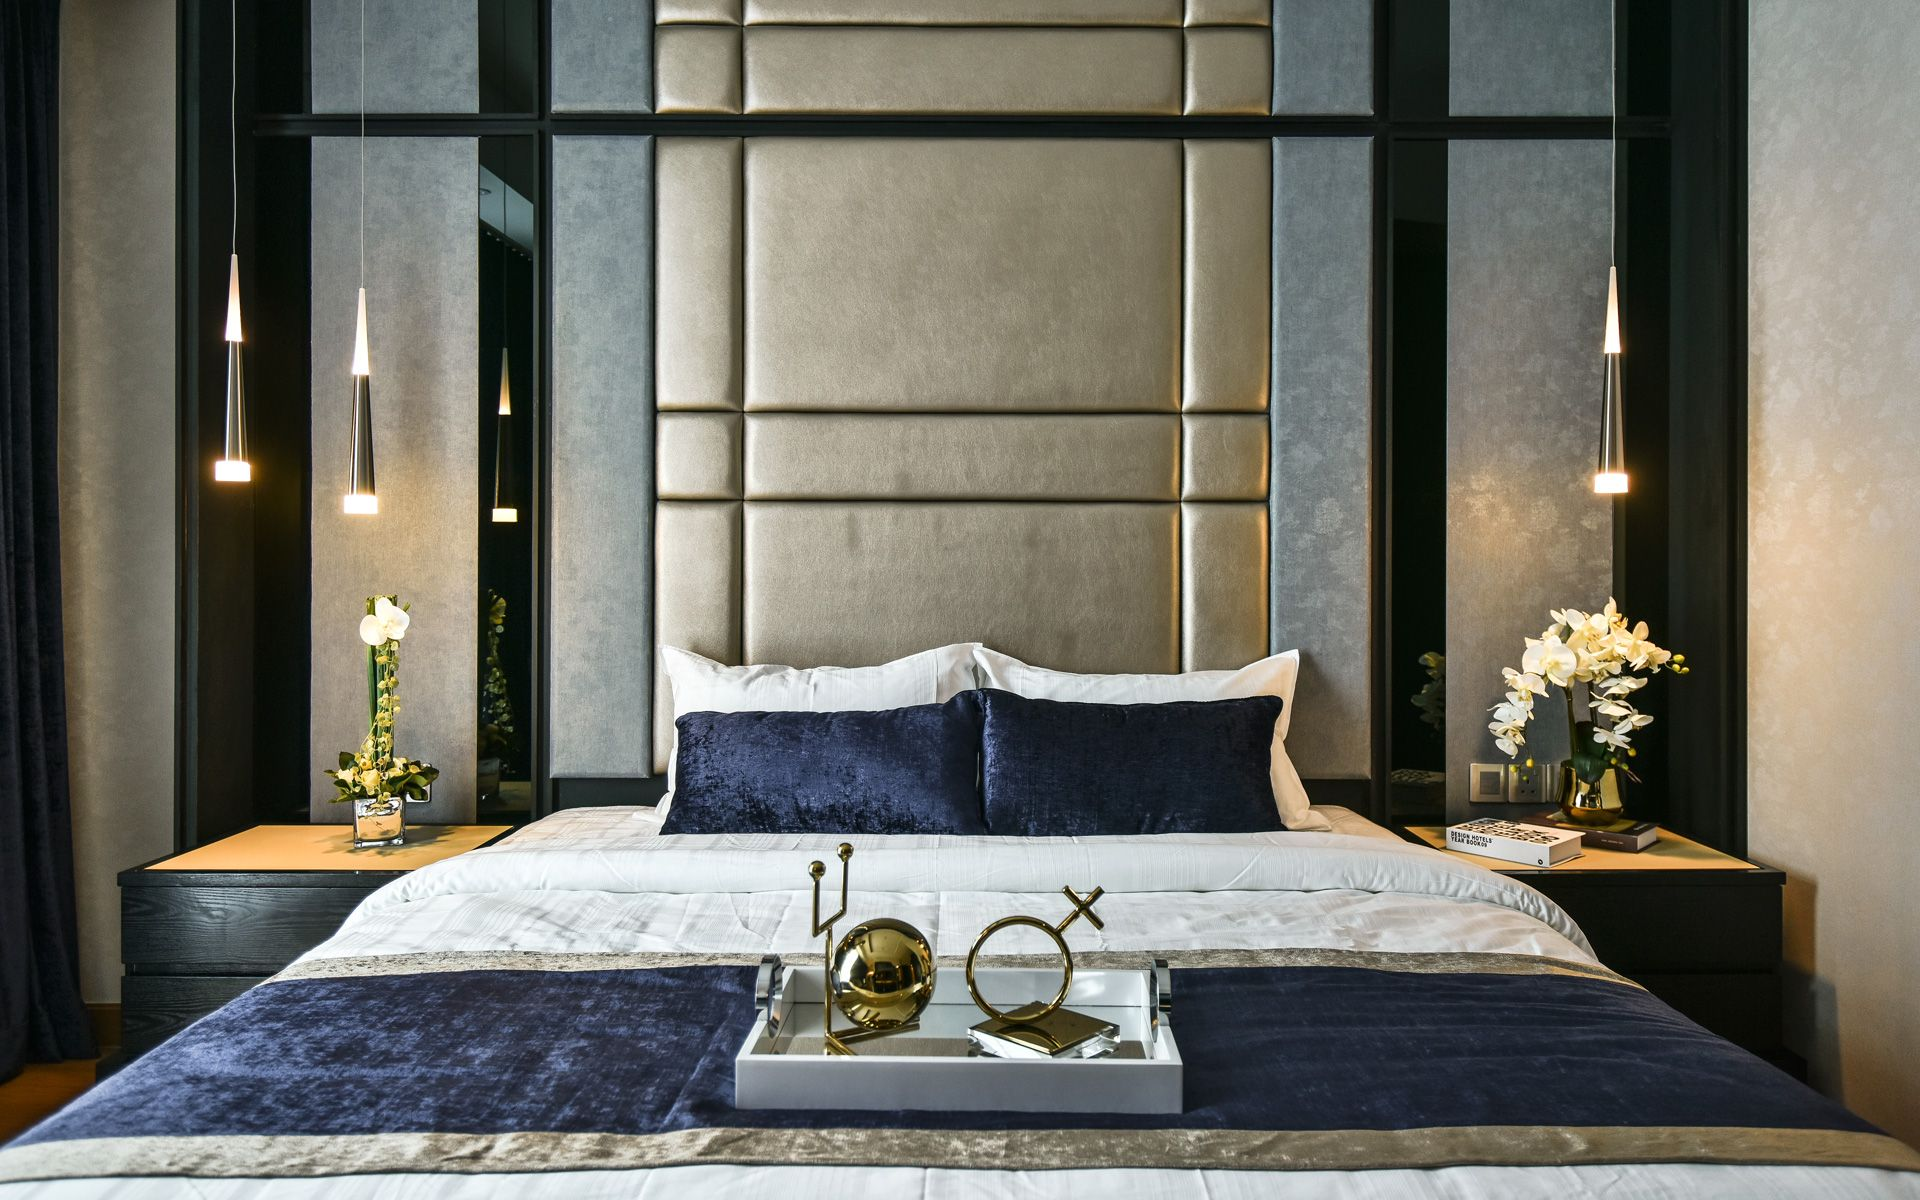 Go From Bedroom To Luxe Hotel Room In 7 Bold Steps